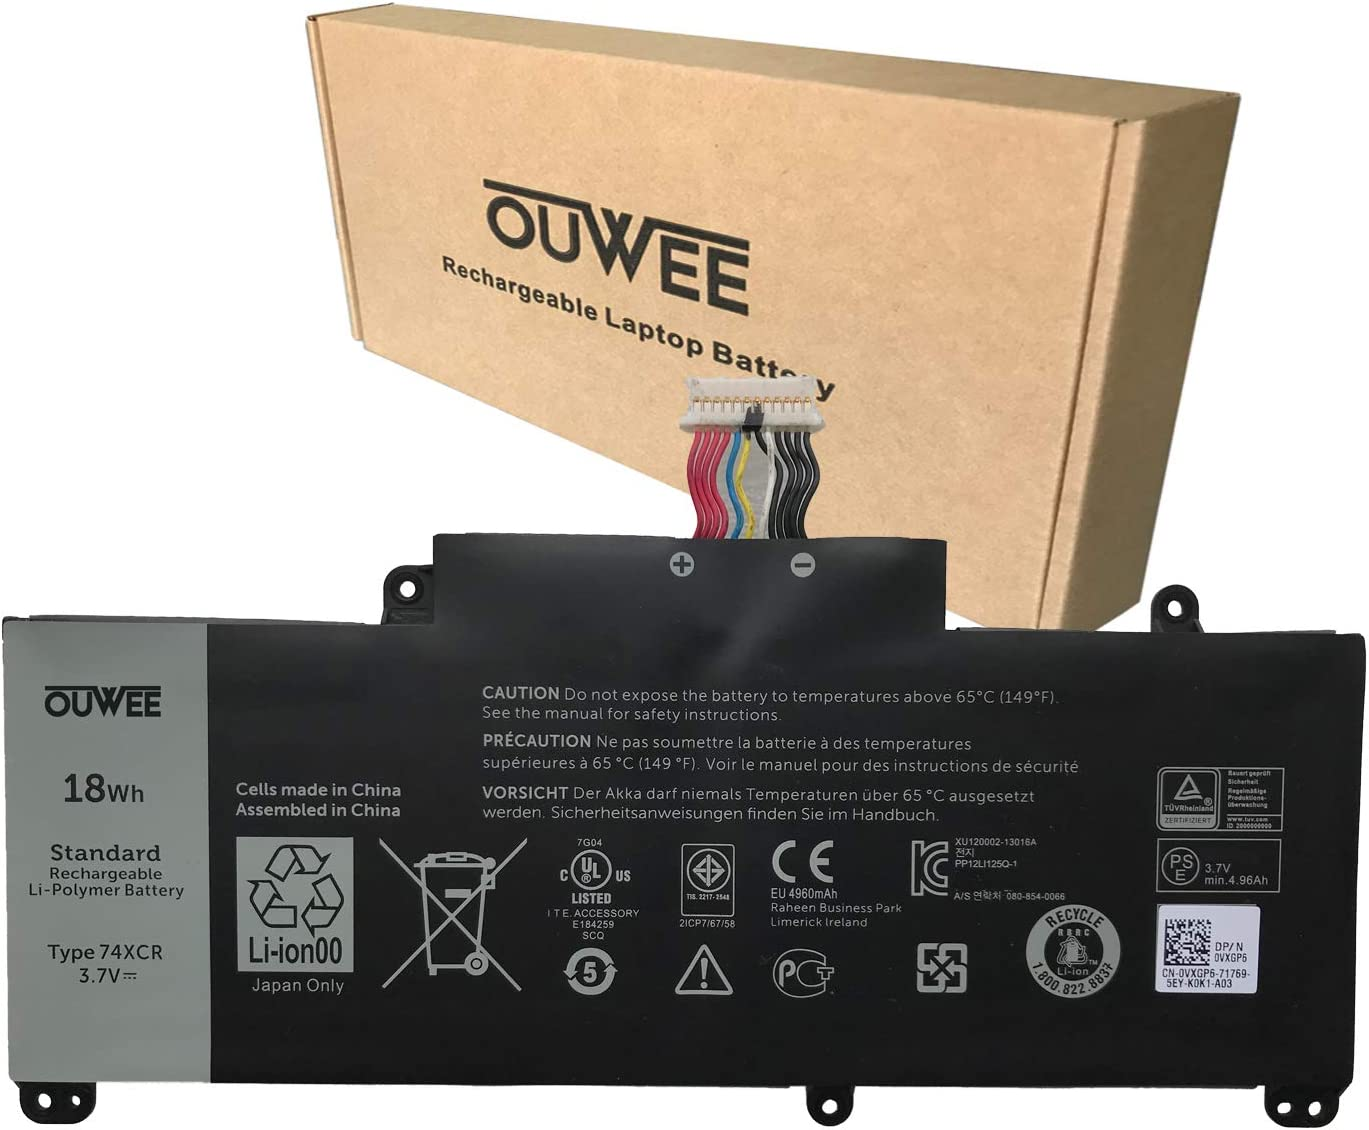 OUWEE 74XCR Laptop Battery Compatible with Dell Venue 8 Pro 5830 Tablet Series Notebook 074XCR X1M2Y 0X1M2Y VXGP6 0VXGP6 3.7V 18Wh 4960mAh 2-Cell